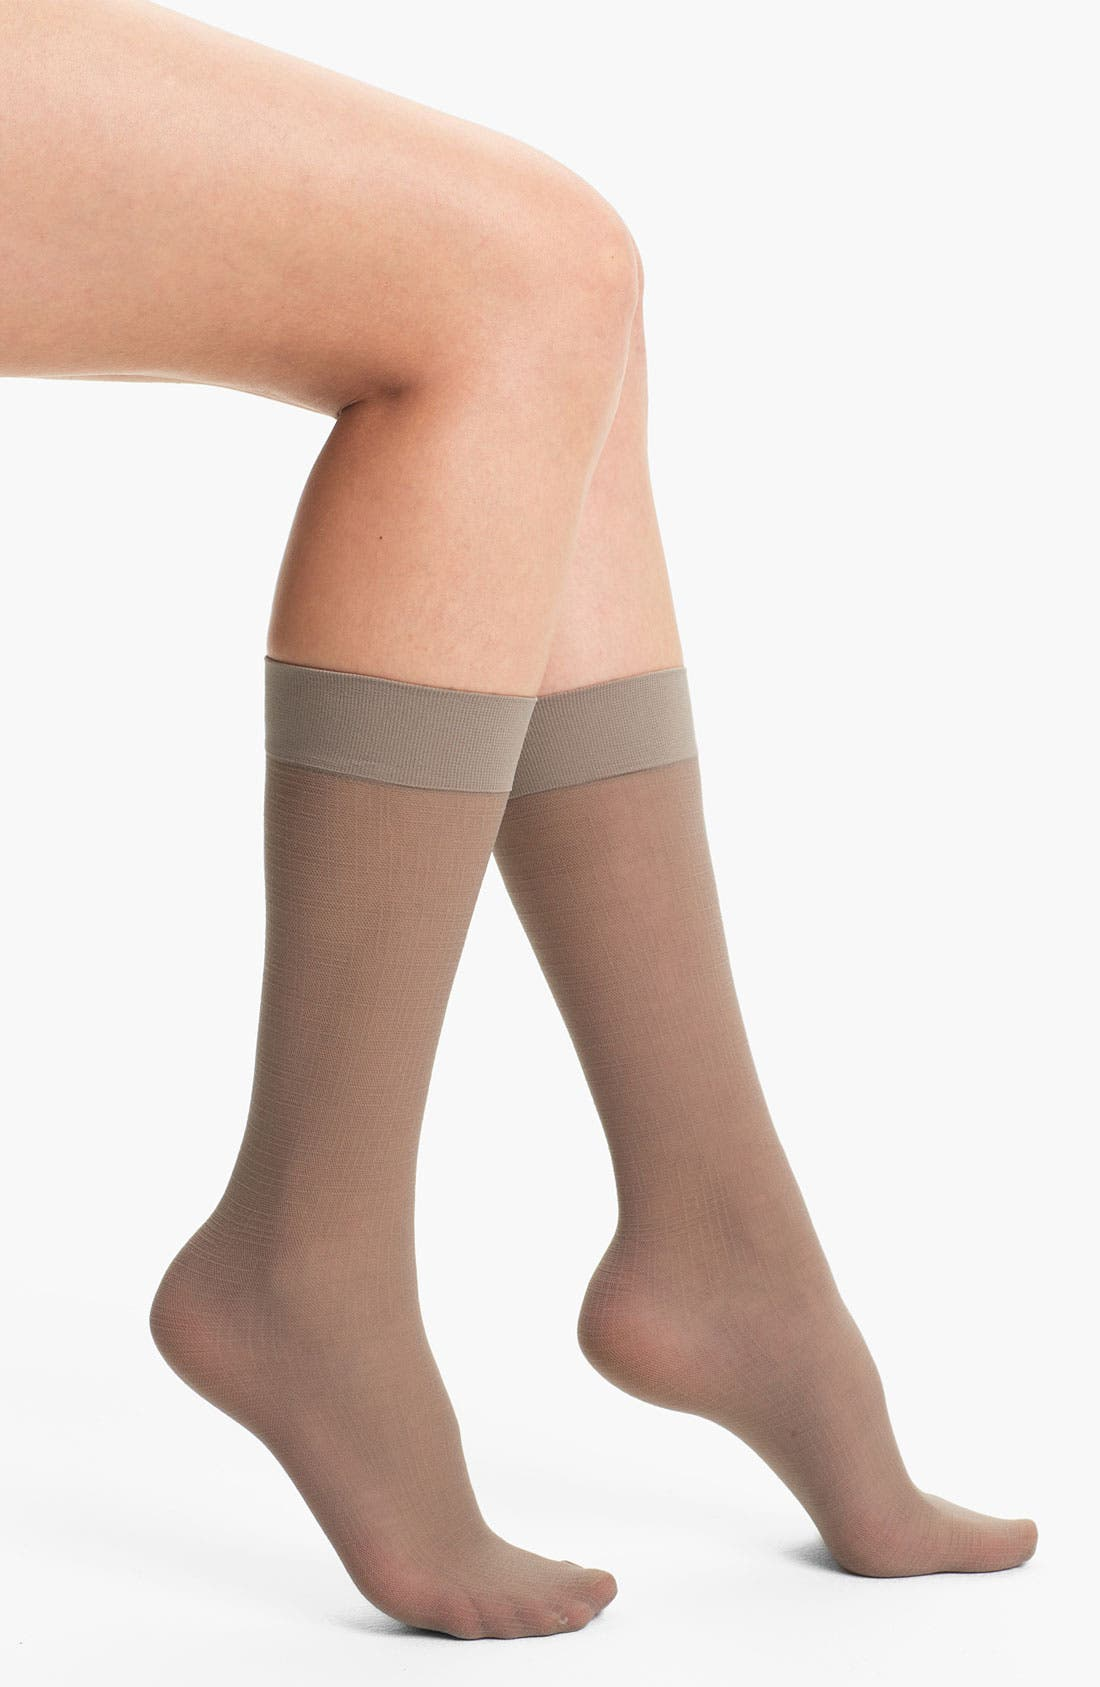 Alternate Image 1 Selected - Nordstrom 'Check It Out' Trouser Socks